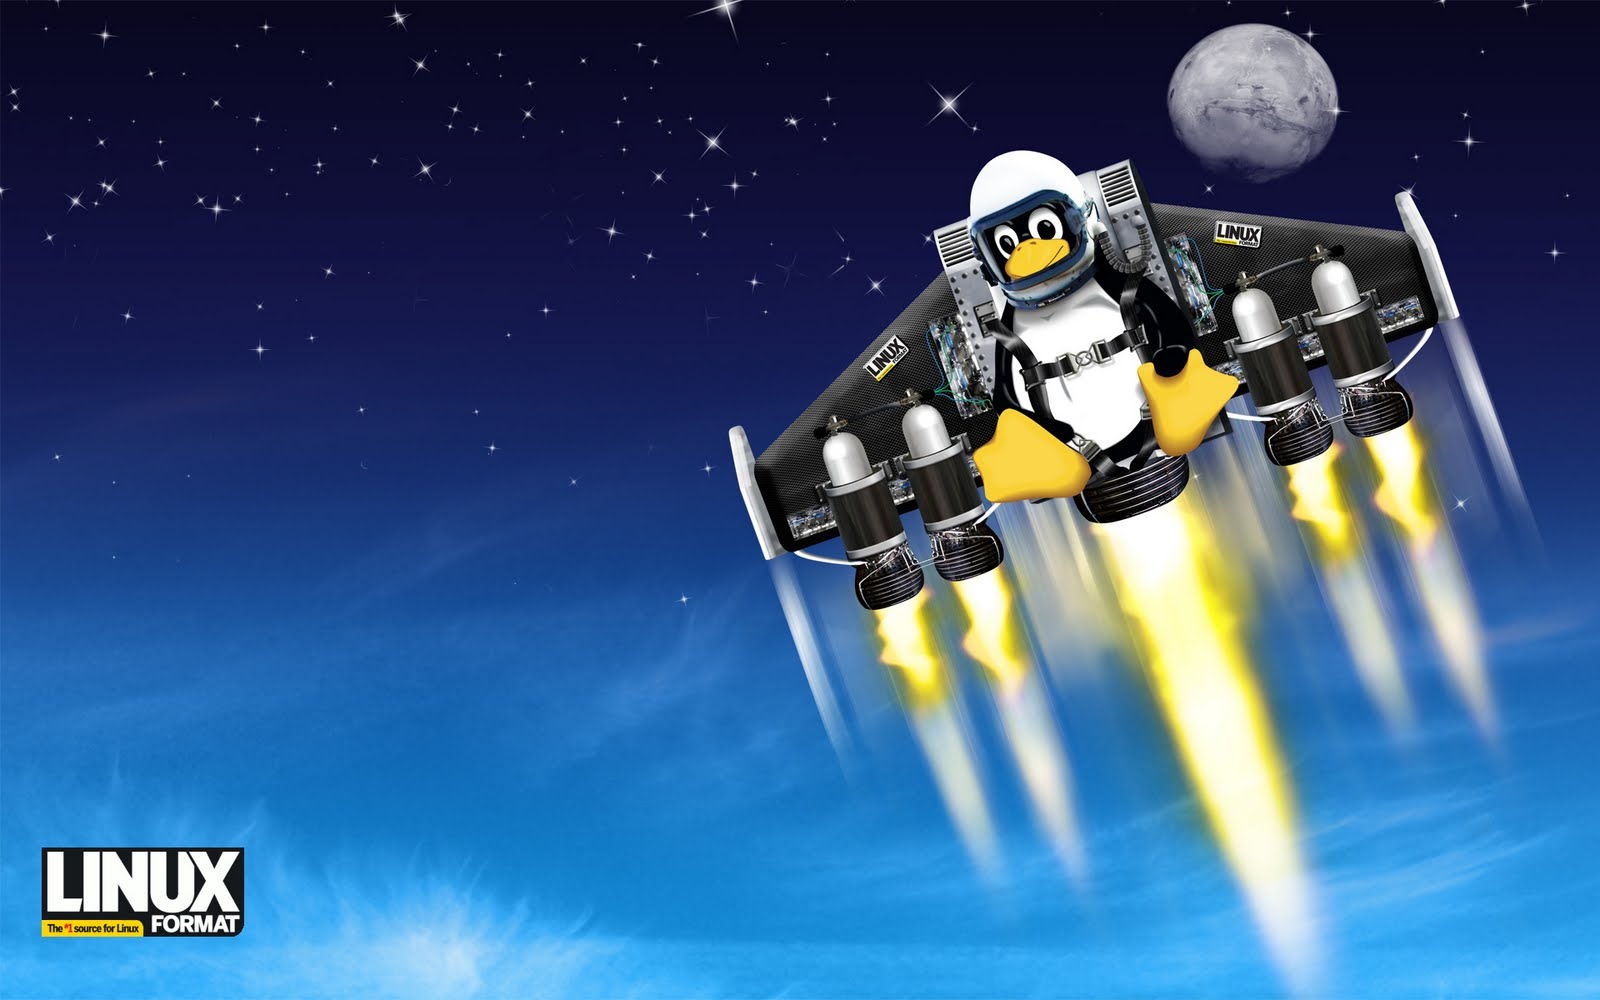 Linux Logo and HD Backgrounds Download Wallpapers in HD for your 1600x1000